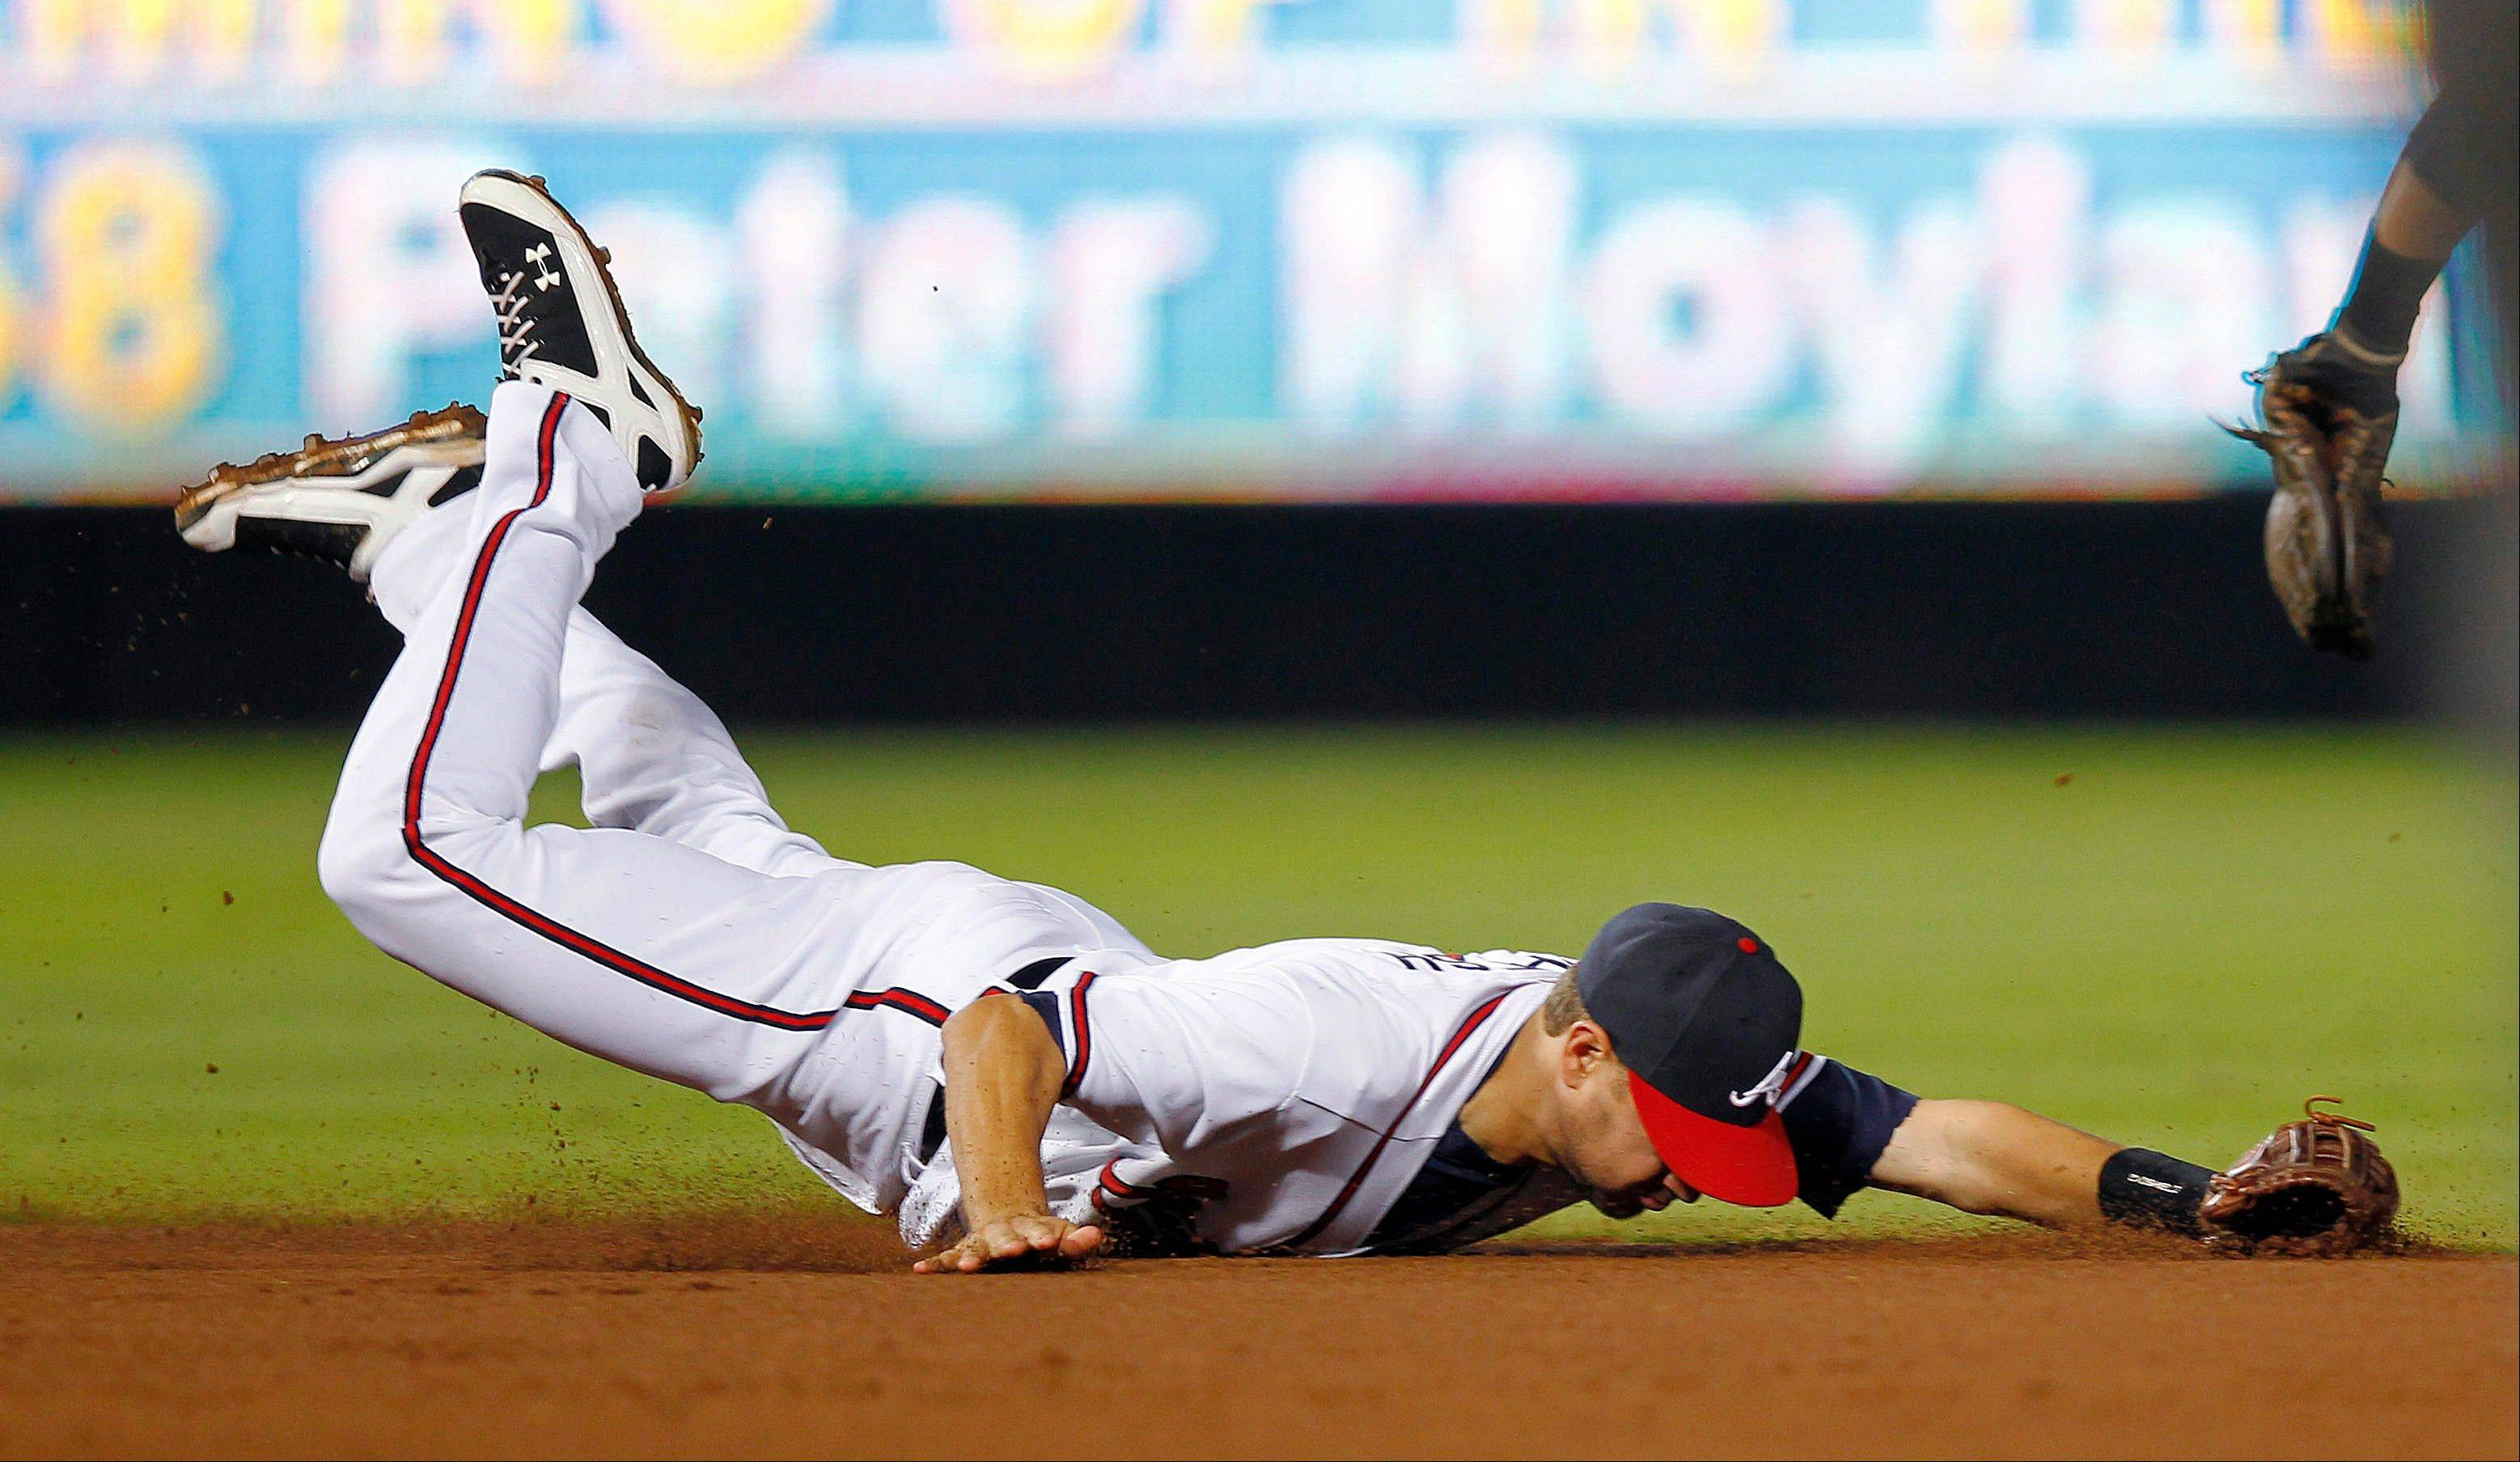 Braves shortstop Paul Janish can't reach a ball hit for a single by the Rockies' Wilin Rosario during the sixth inning Tuesday in Atlanta.